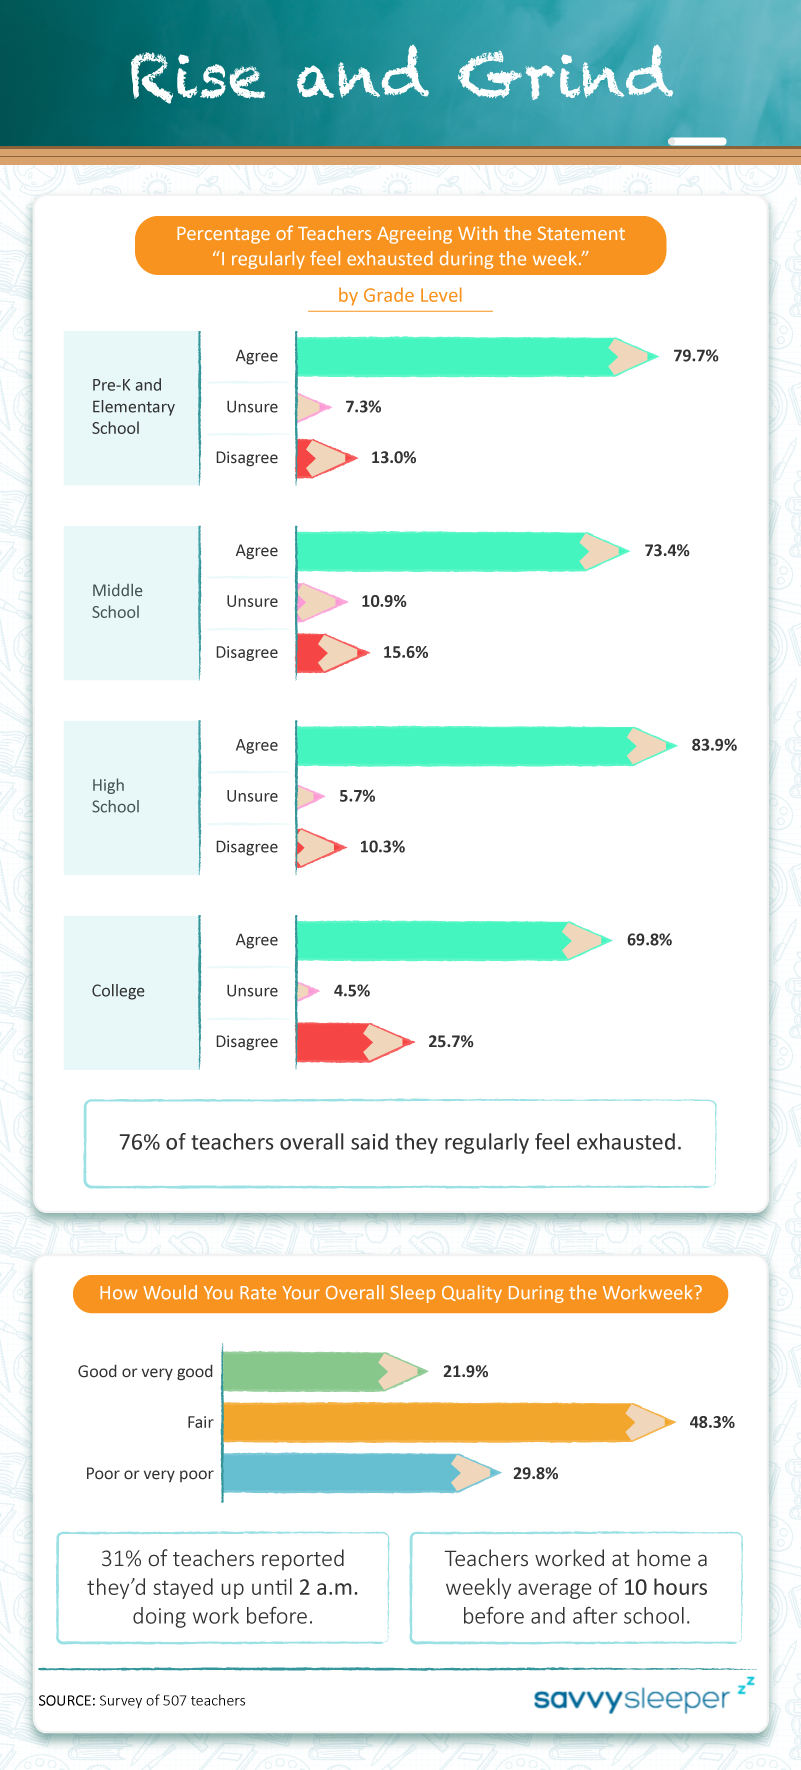 percentage-of-teachers-who-agree-with-the-statement-i-regularly-feel-exhausted-during-the-week-by-grade-level-and-sleep-quality-of-teachers-during-the-week